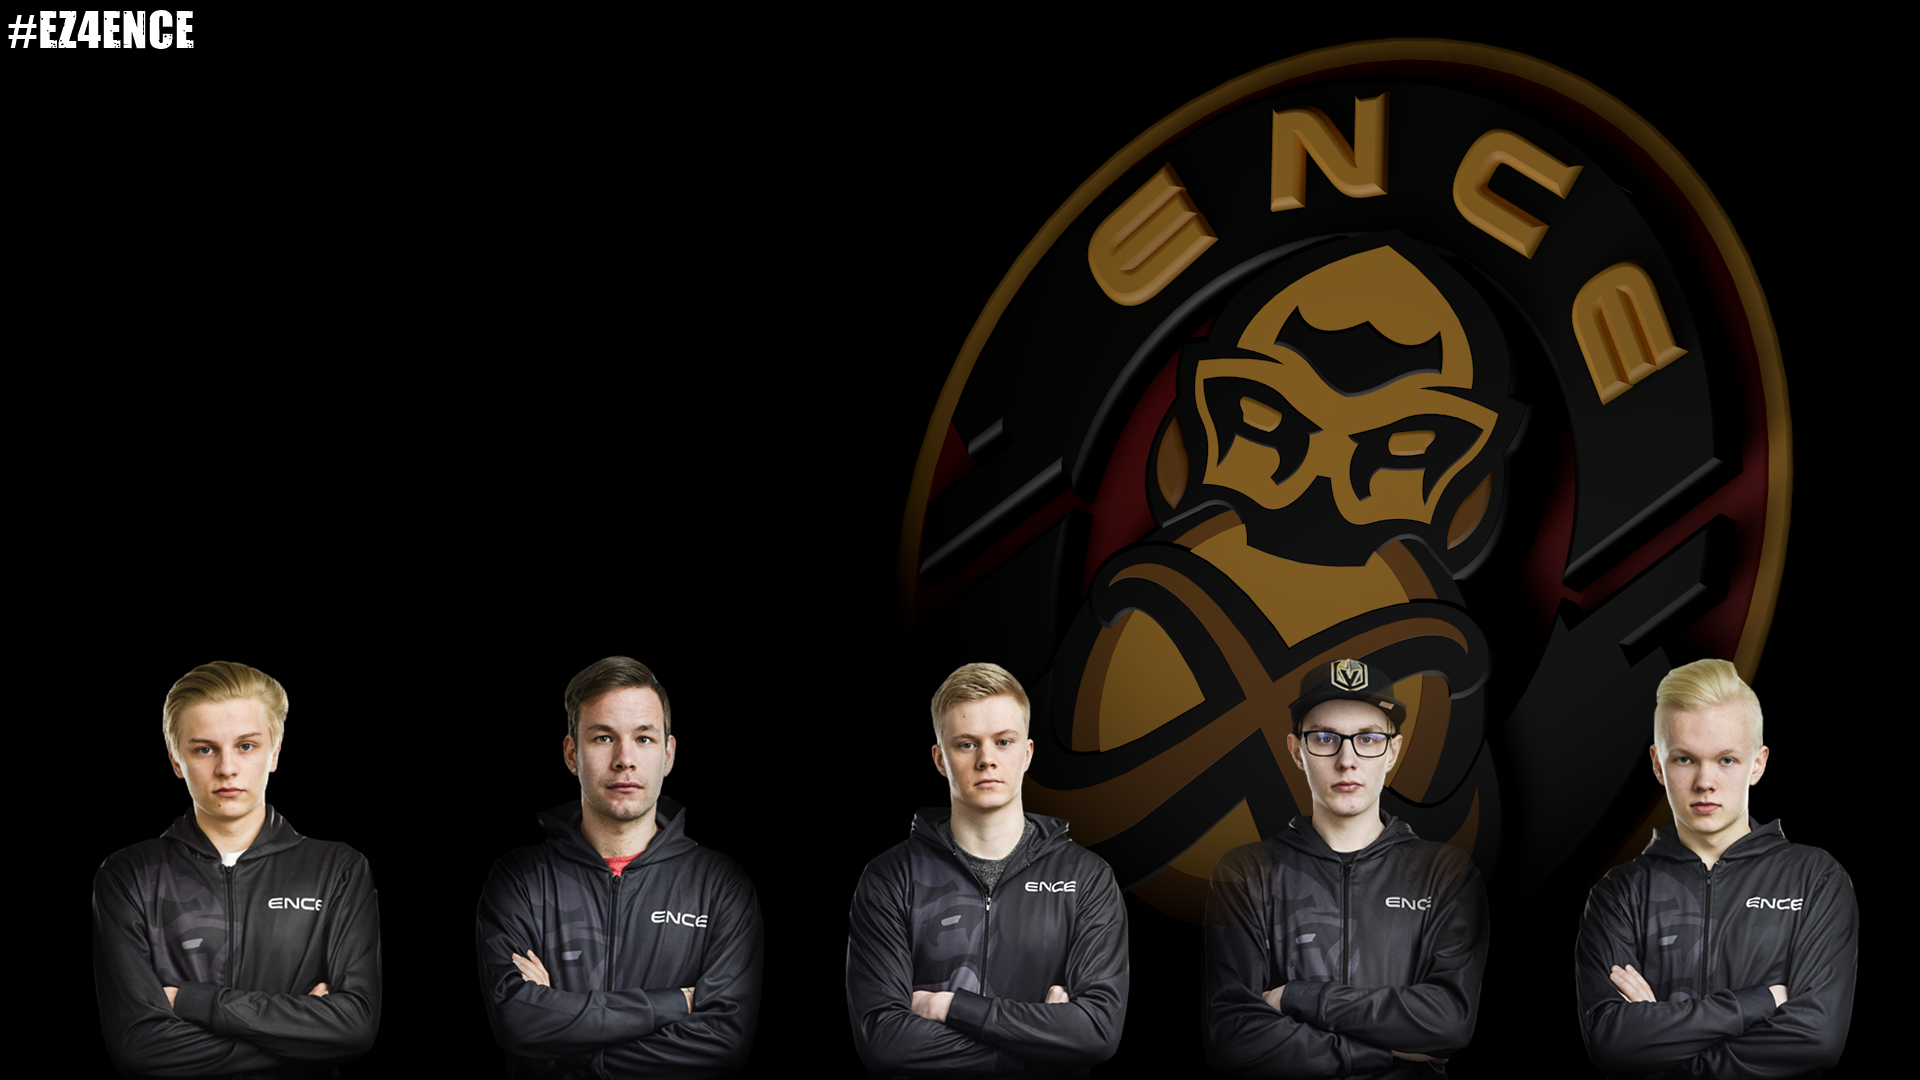 ENCE ESPORTS İS BACK